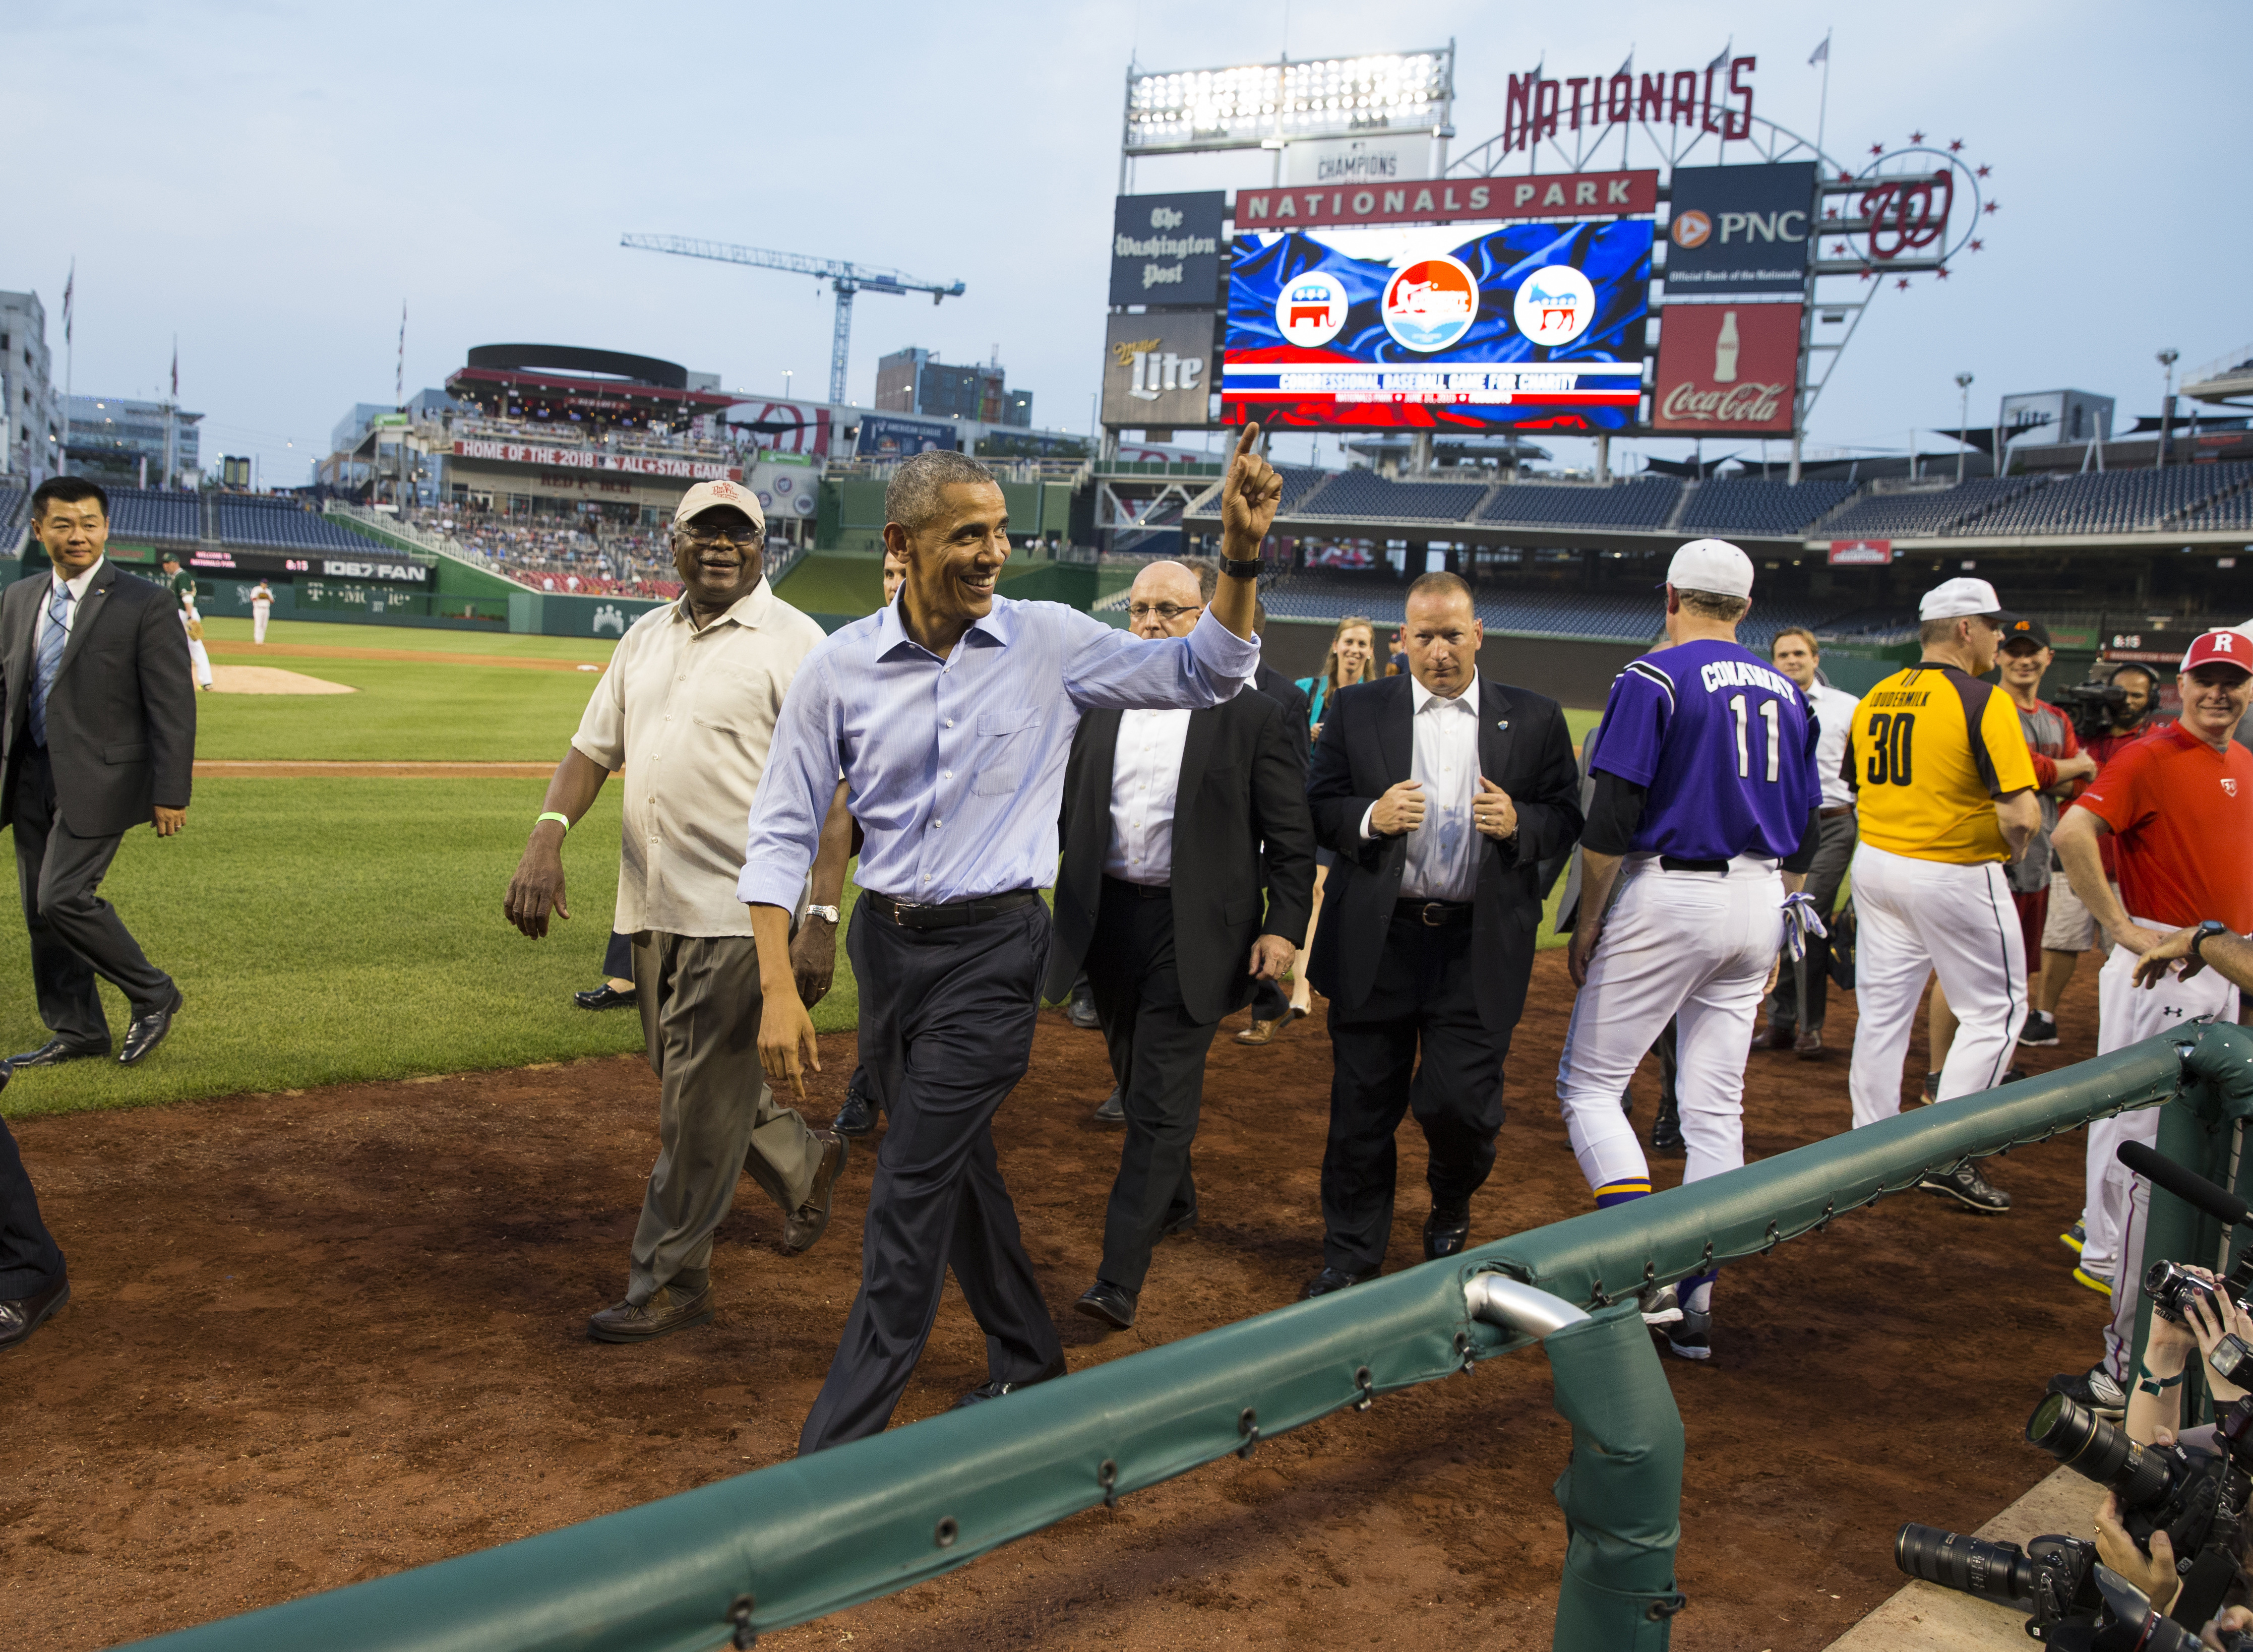 Democrats snag series lead in Congressional Baseball Game